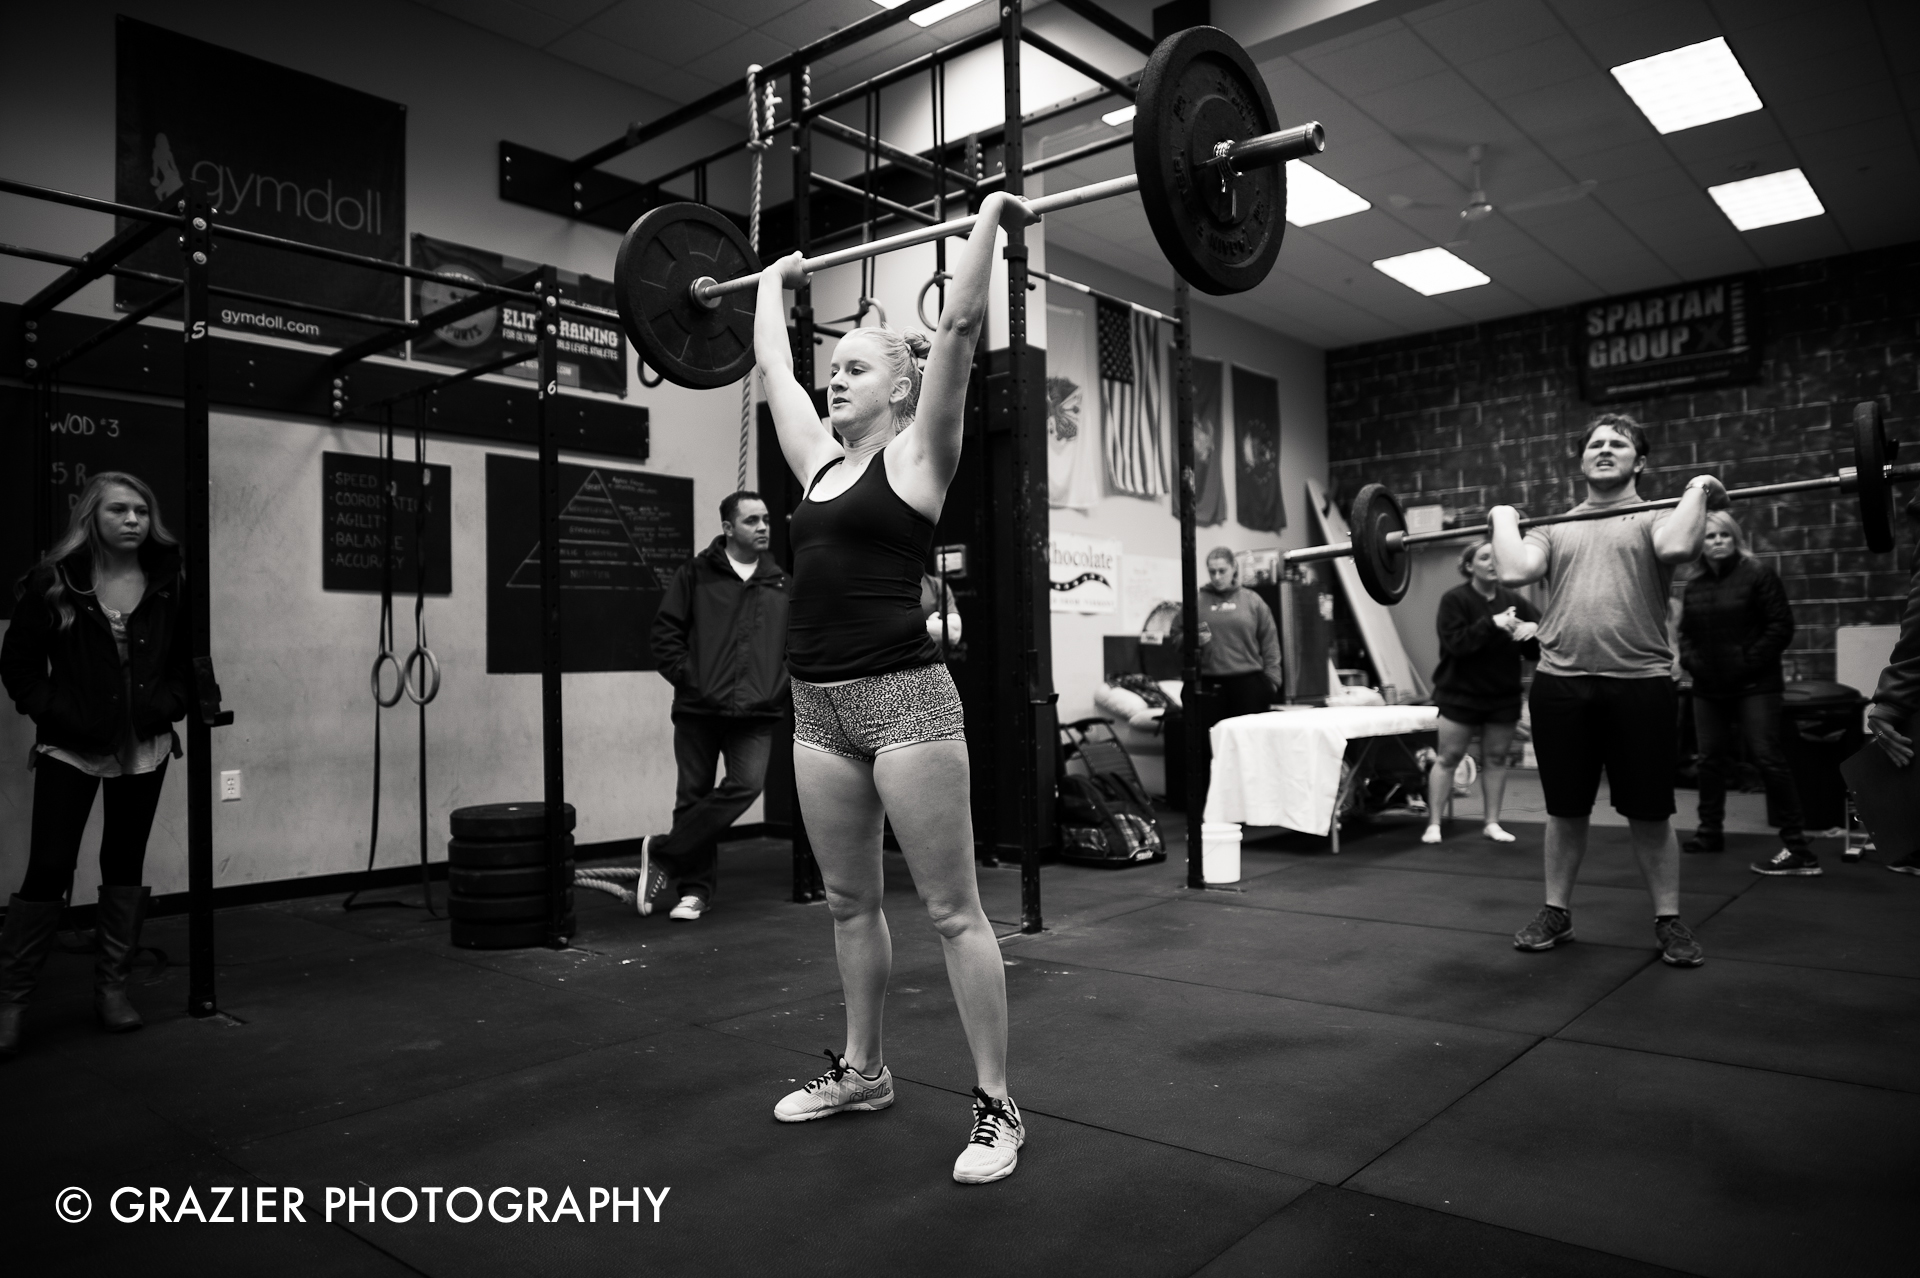 Grazier_Photography_Crossfit_150328-26.JPG